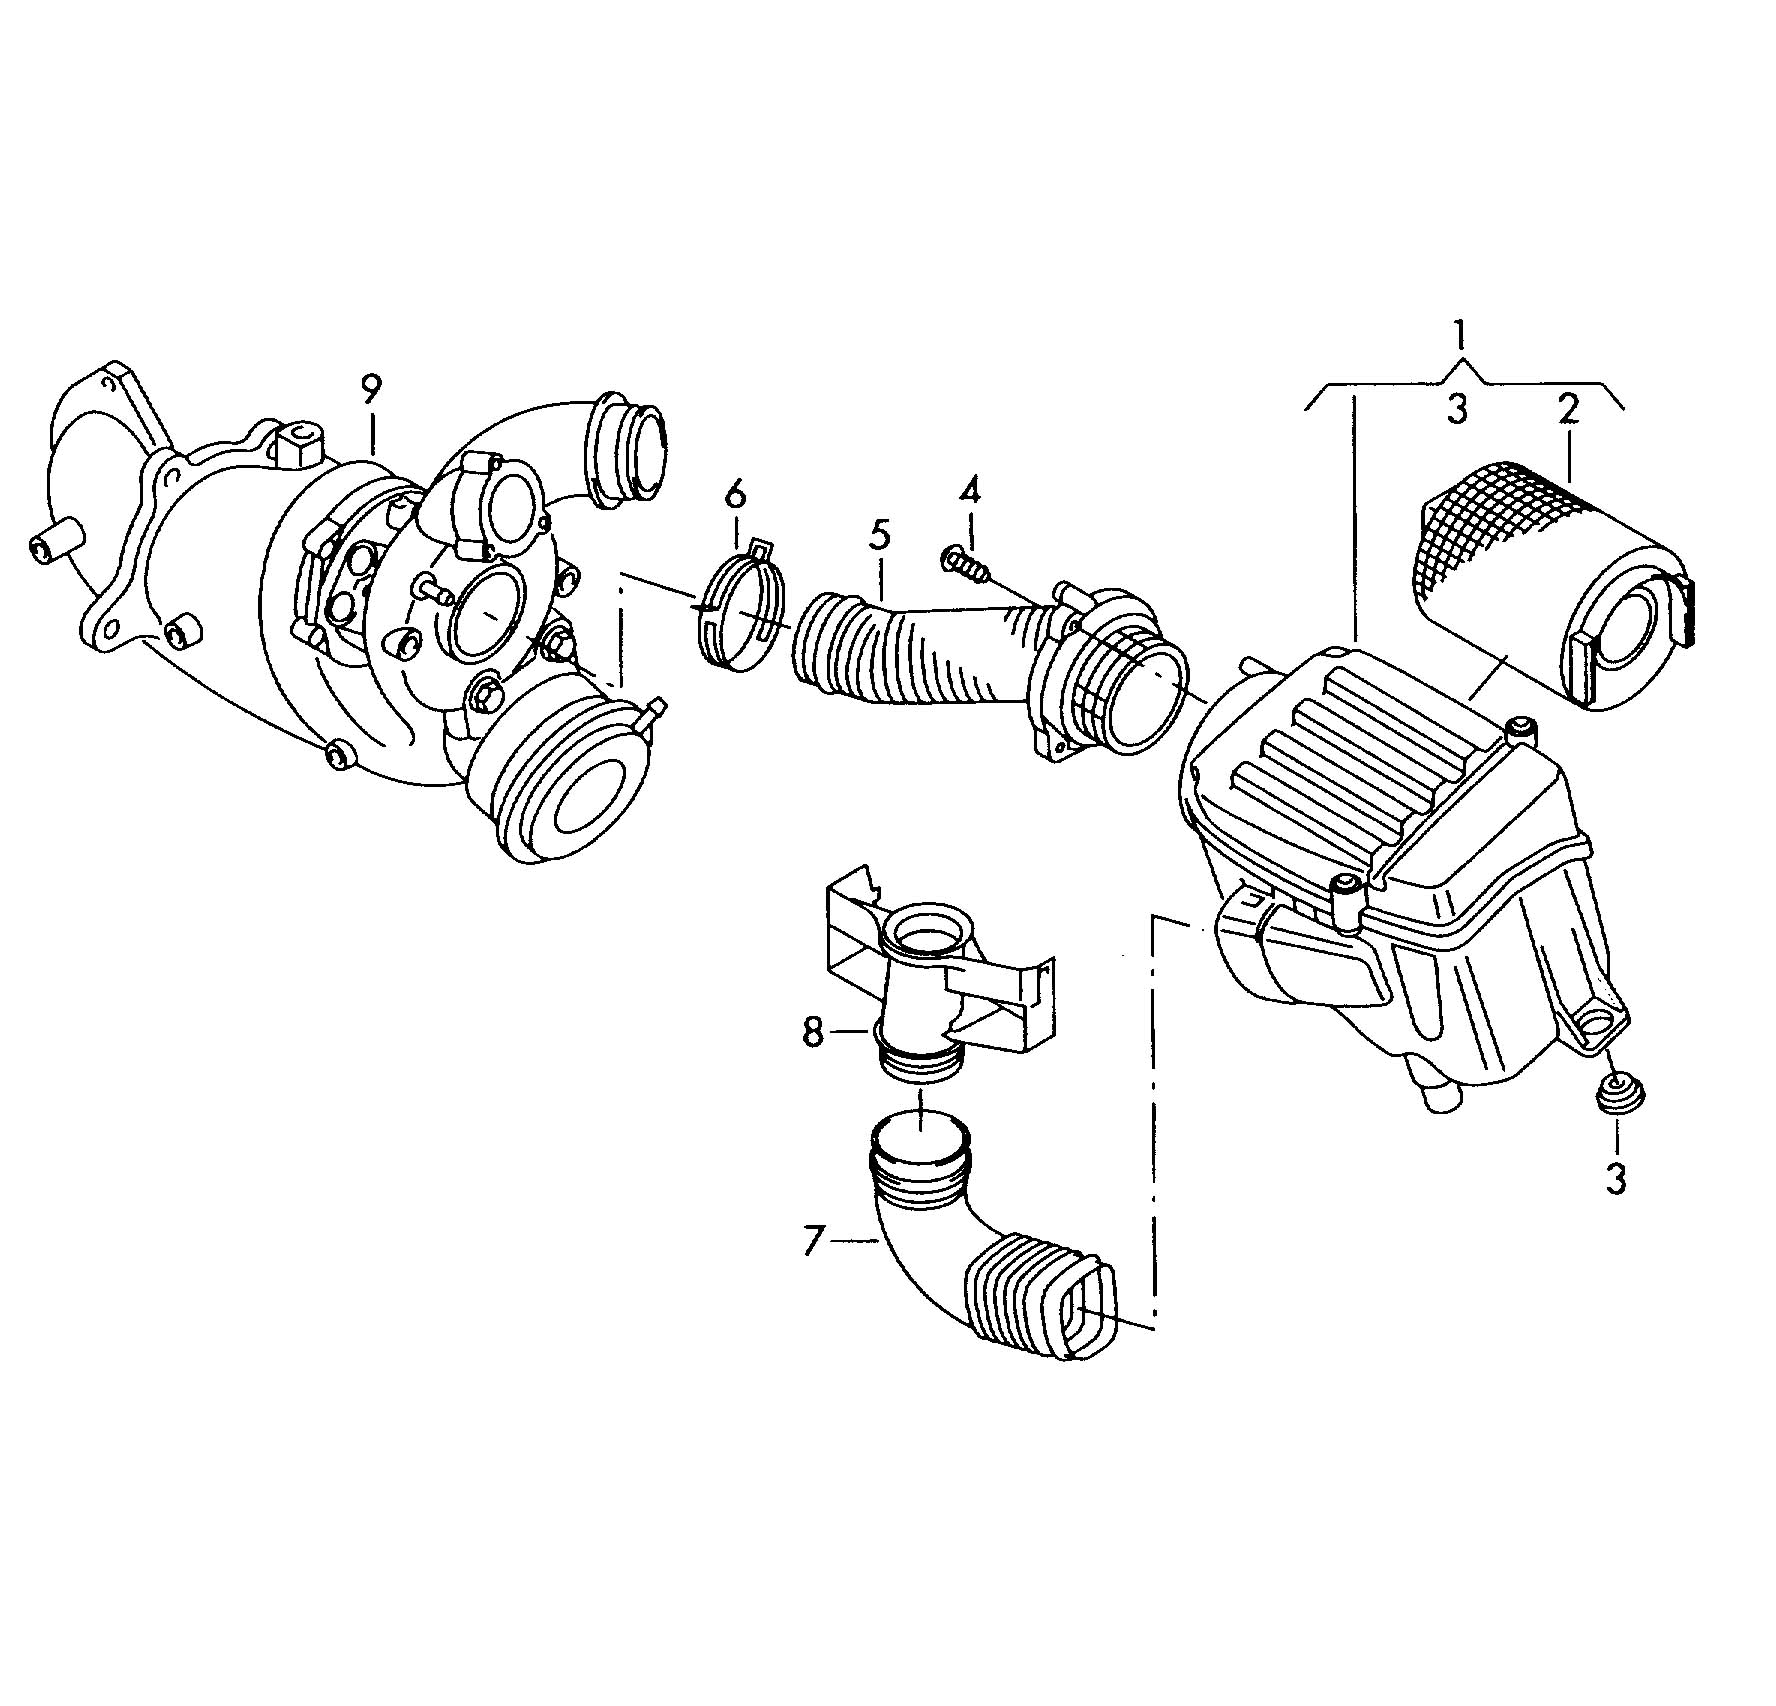 Volkswagen Jetta Air Cleaner With Connecting Parts 1